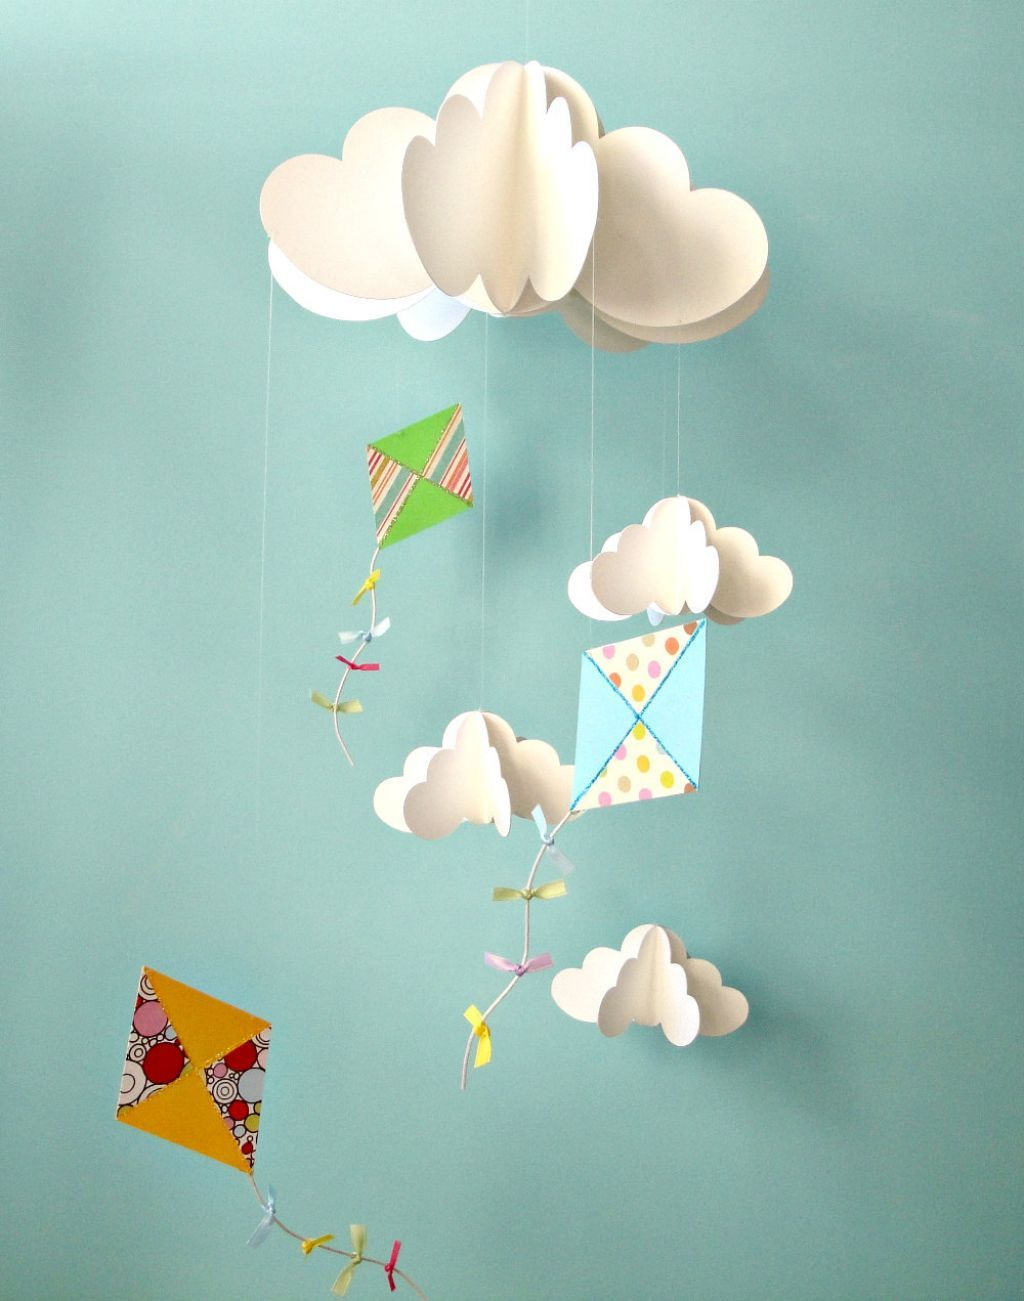 Ceiling Hanging Decorations For Baby Room Boatylicious Org